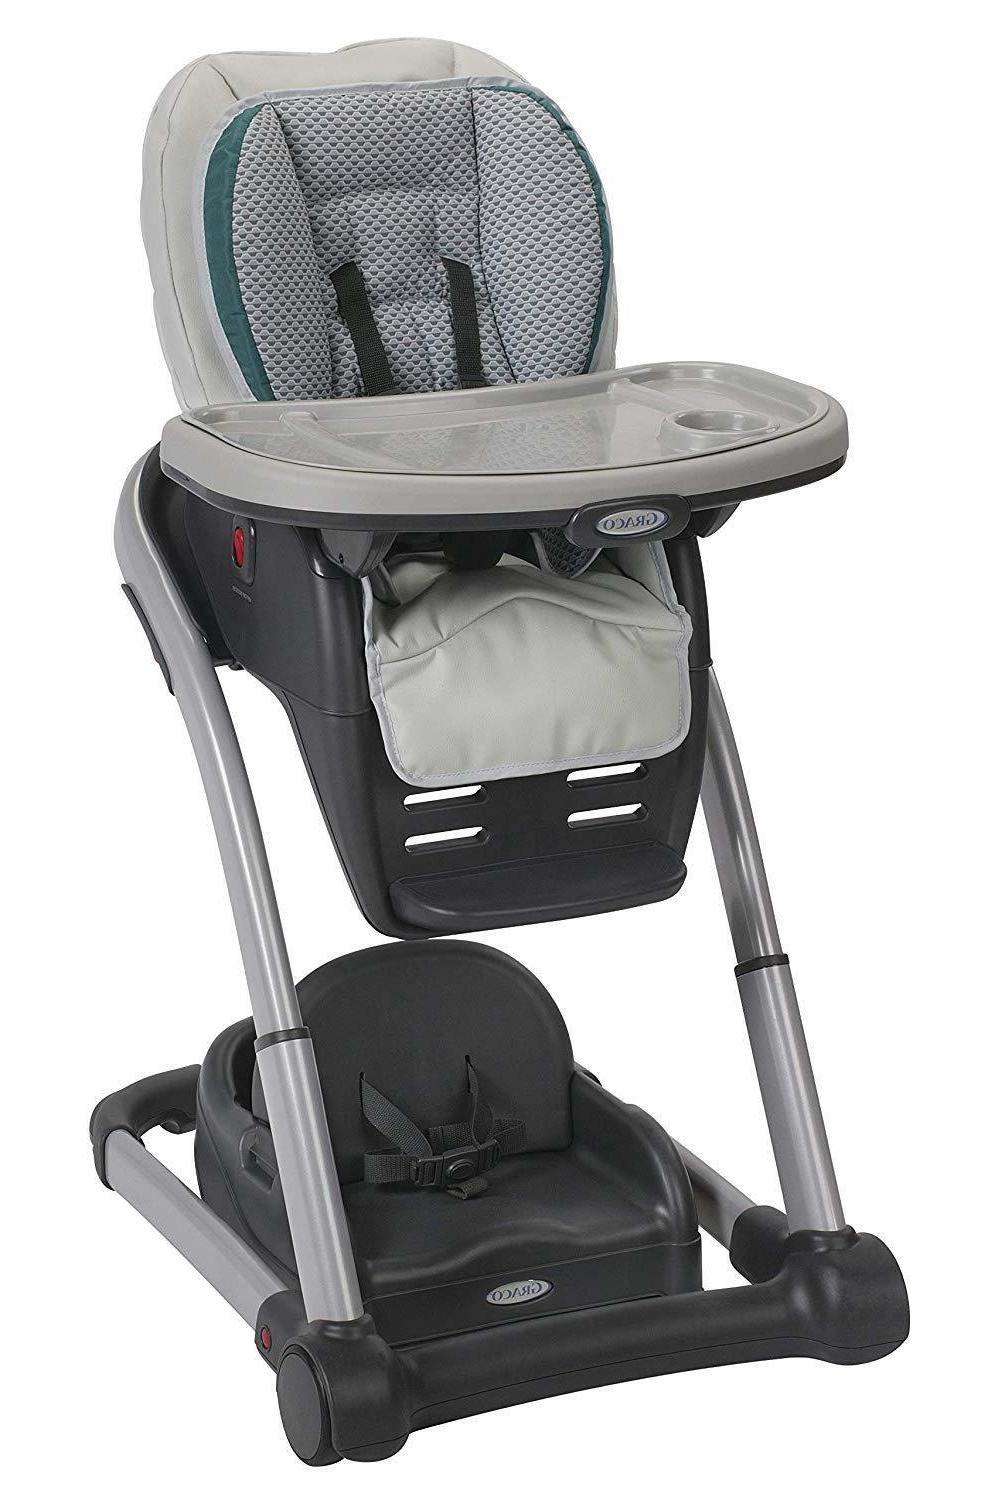 Graco Highchair,